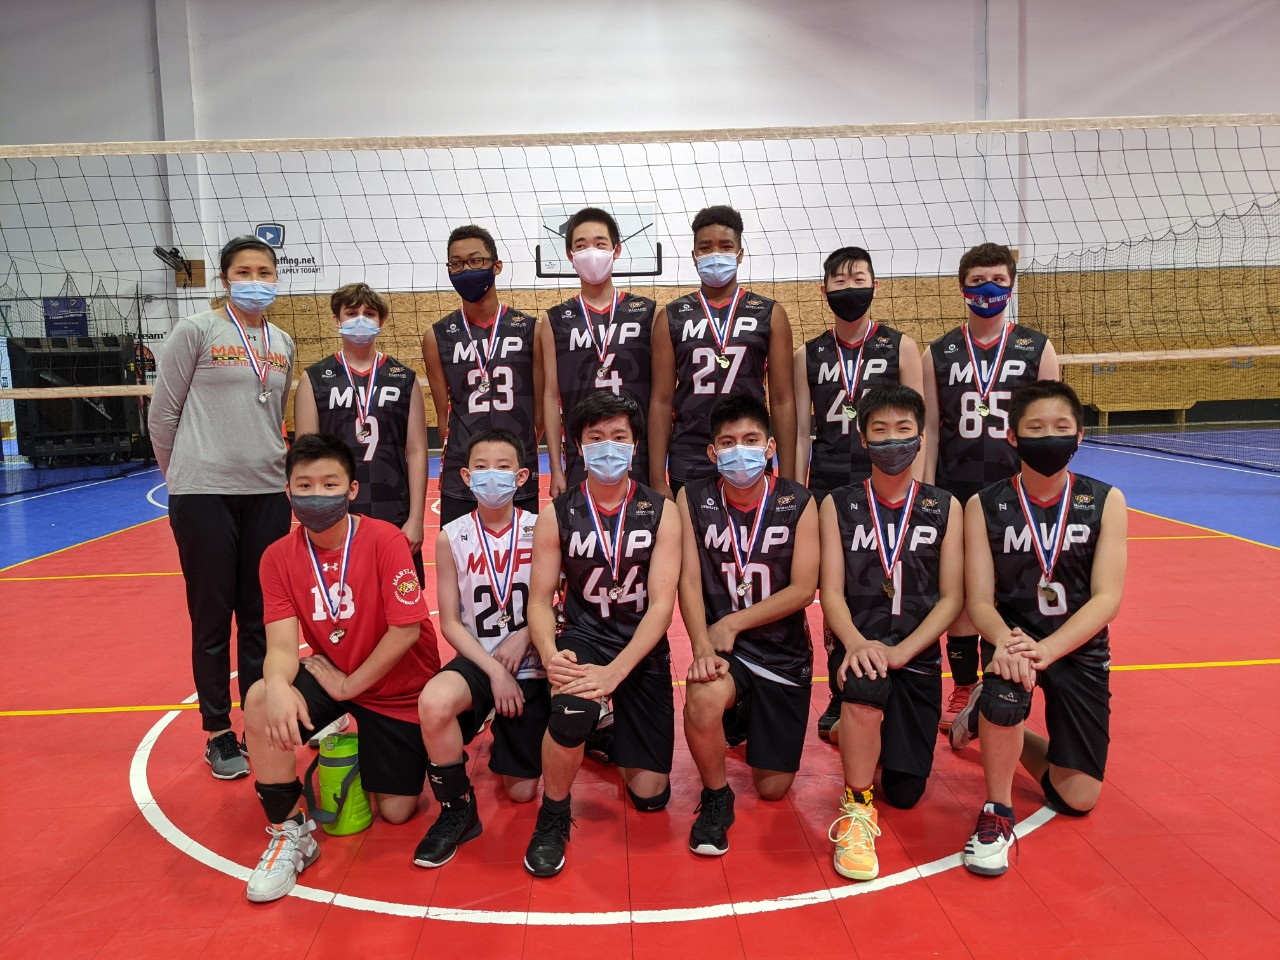 MVP 14s Sweep the MD Jrs 13/14 Mixed Tournament